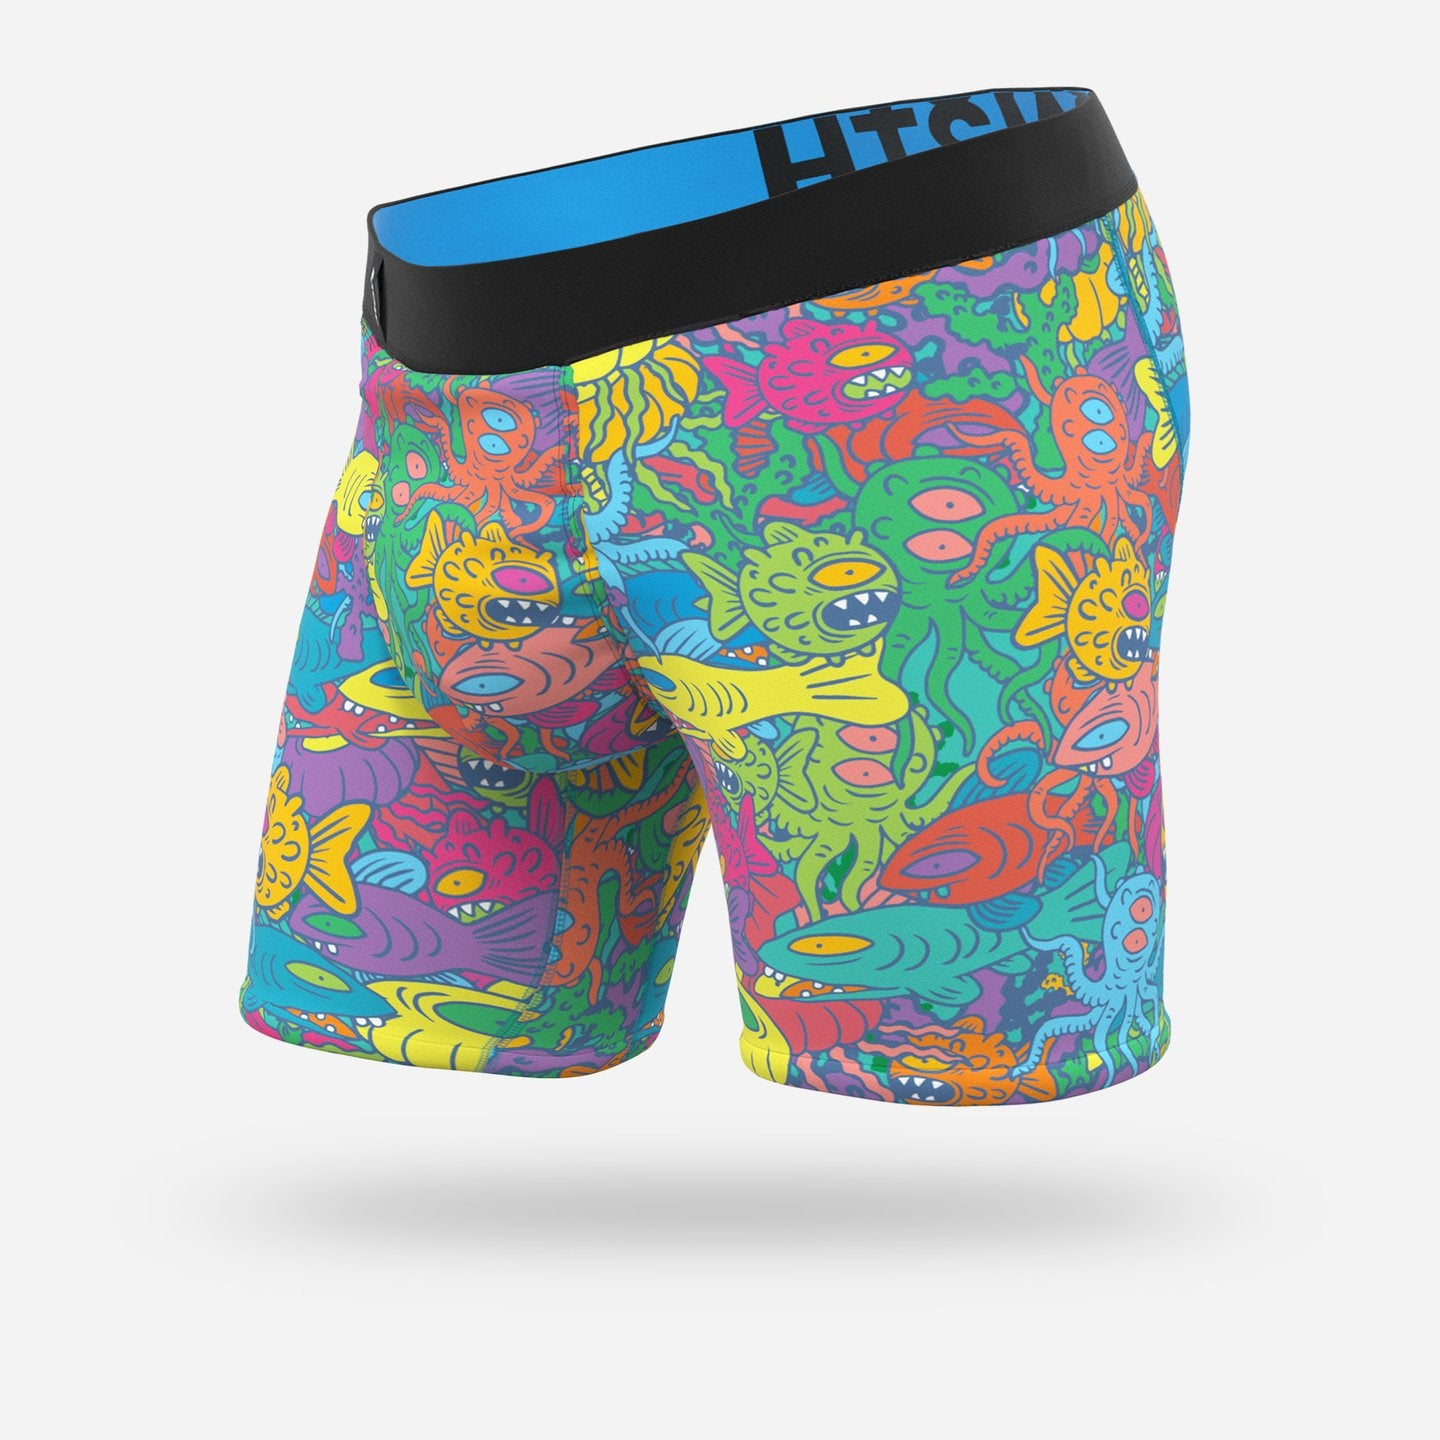 BN3TH Entourage Boxer Brief - Go Fish